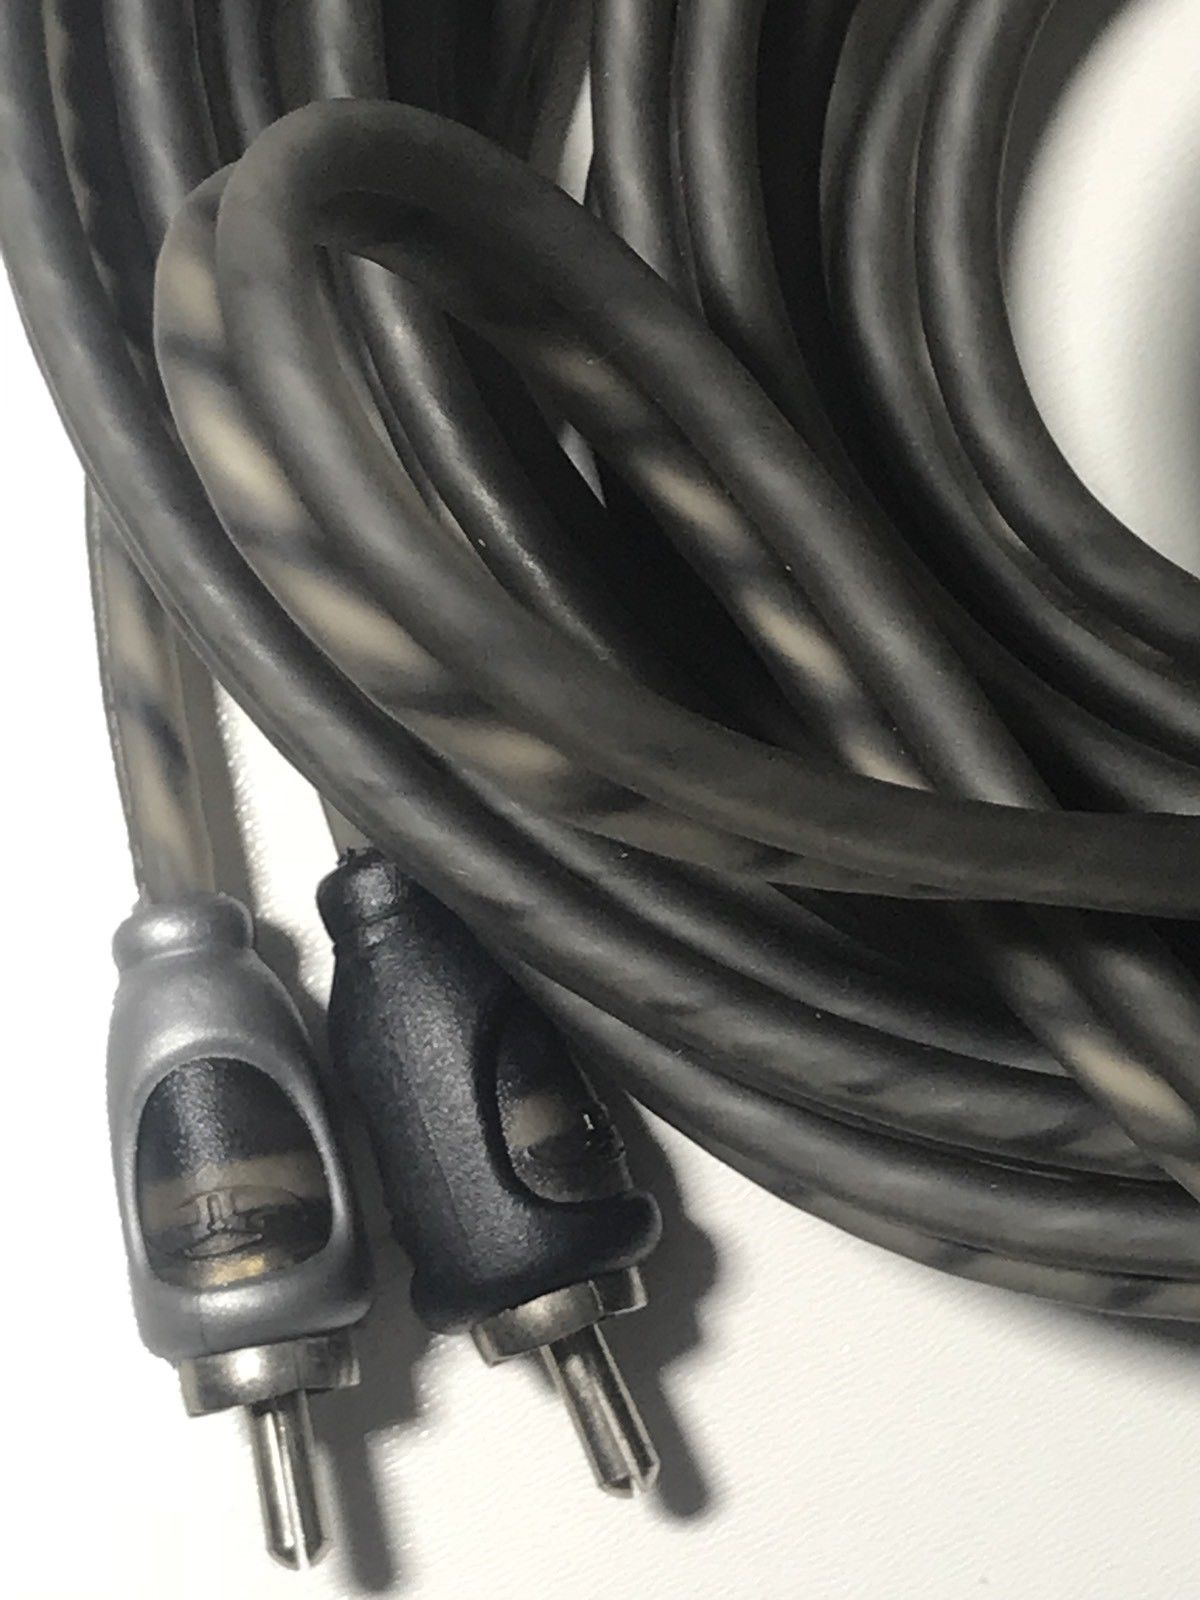 Wiring Gl Pro Sound Rca Cable Rfit Series 20 Feet 6m